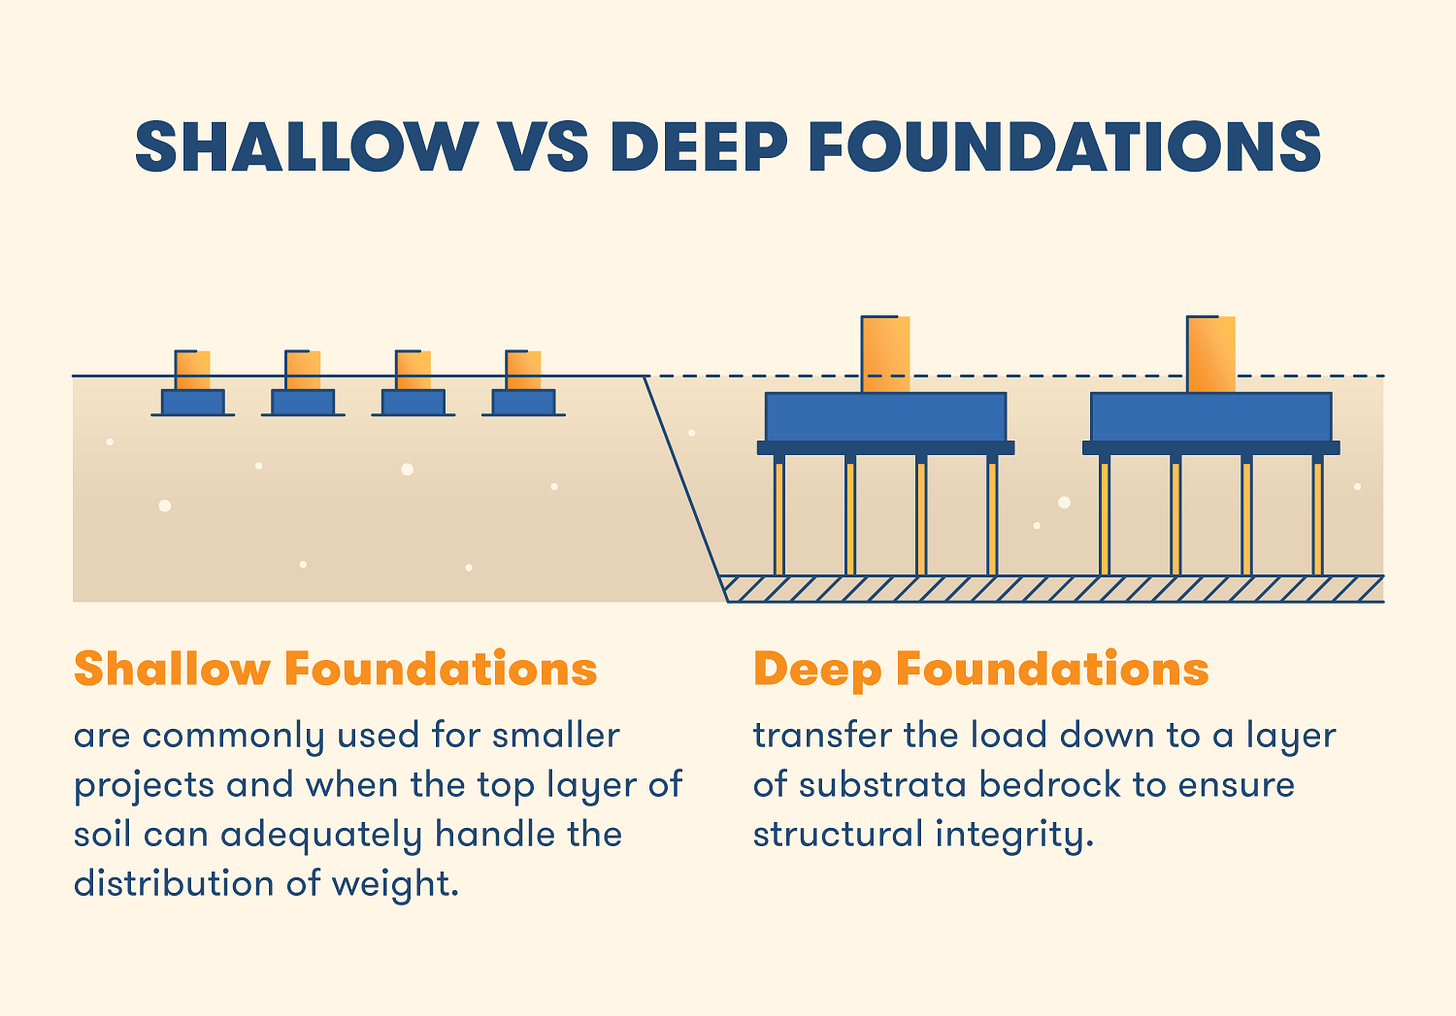 https://acropolis-wp-content-uploads.s3.us-west-1.amazonaws.com/shallow-vs-deep-foundations.png